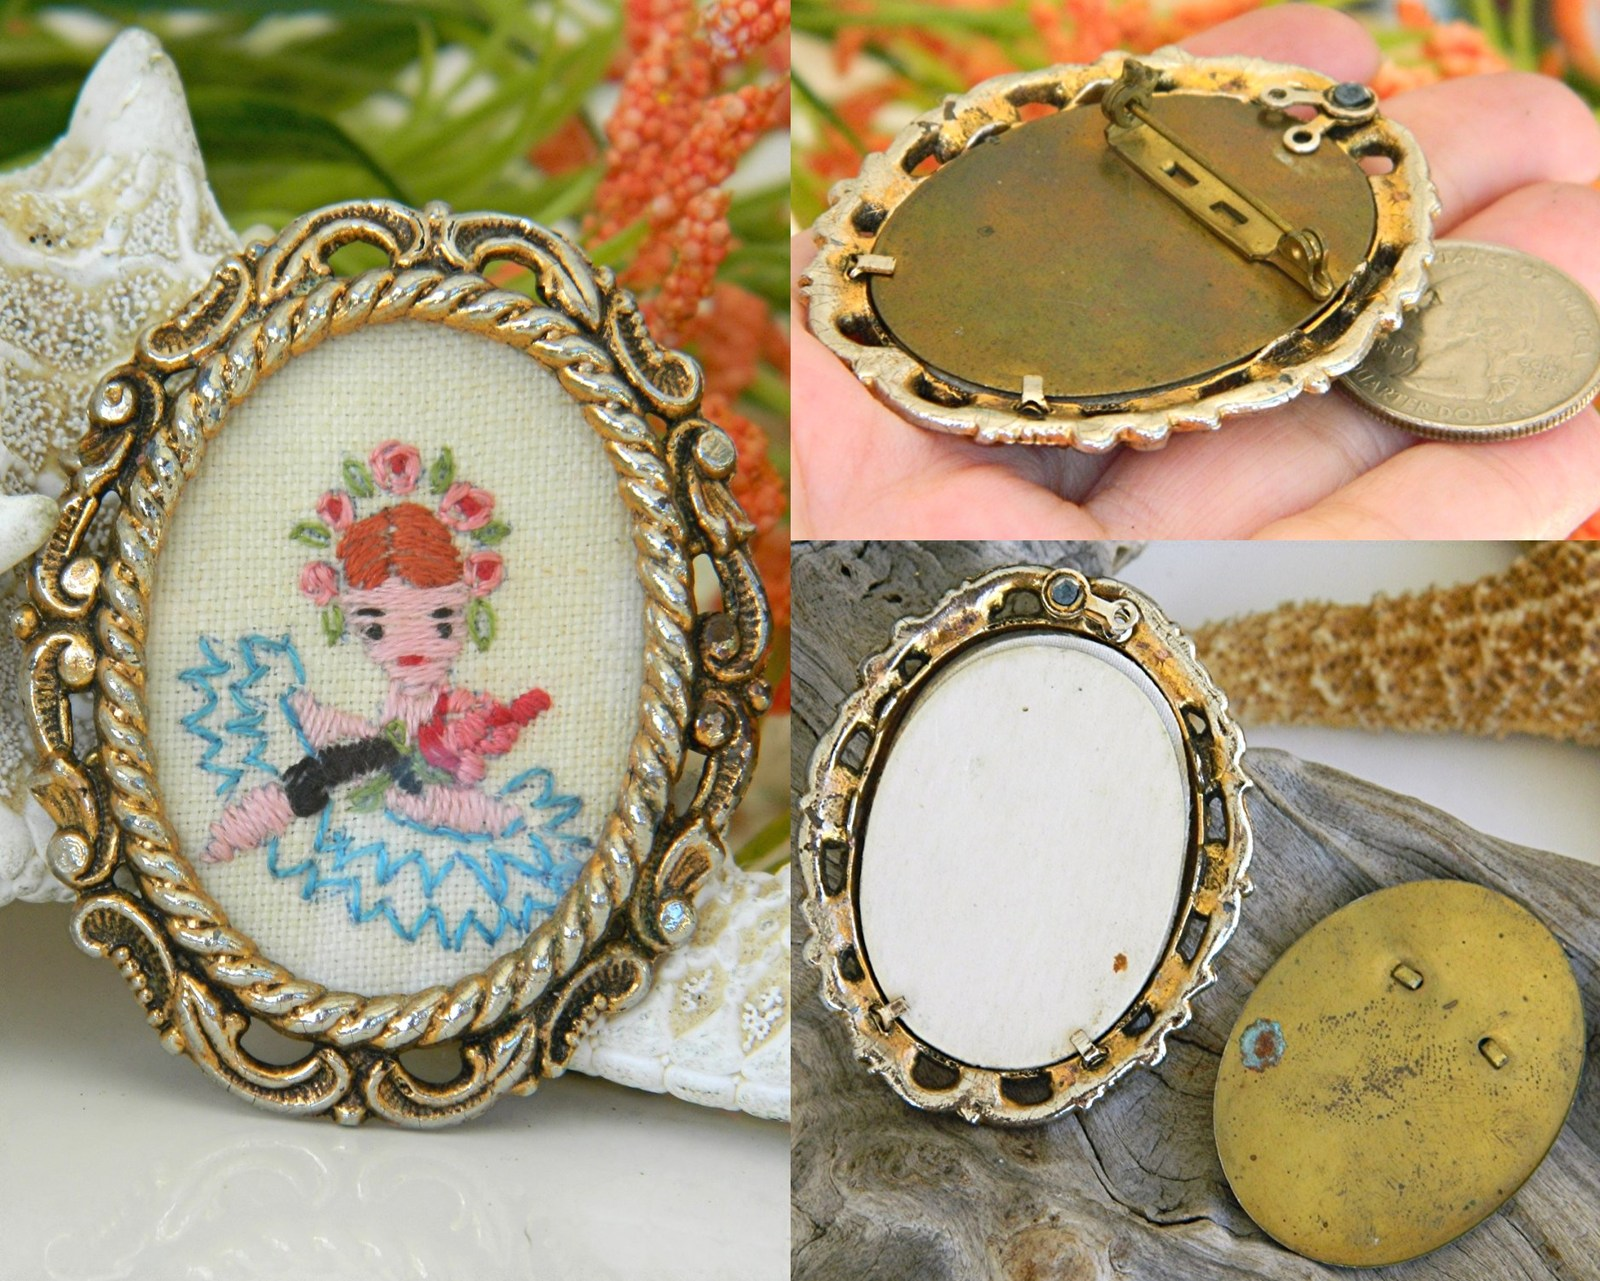 Vintage Embroidered Oval Picture Frame Brooch Pin Flowers Girl  image 3